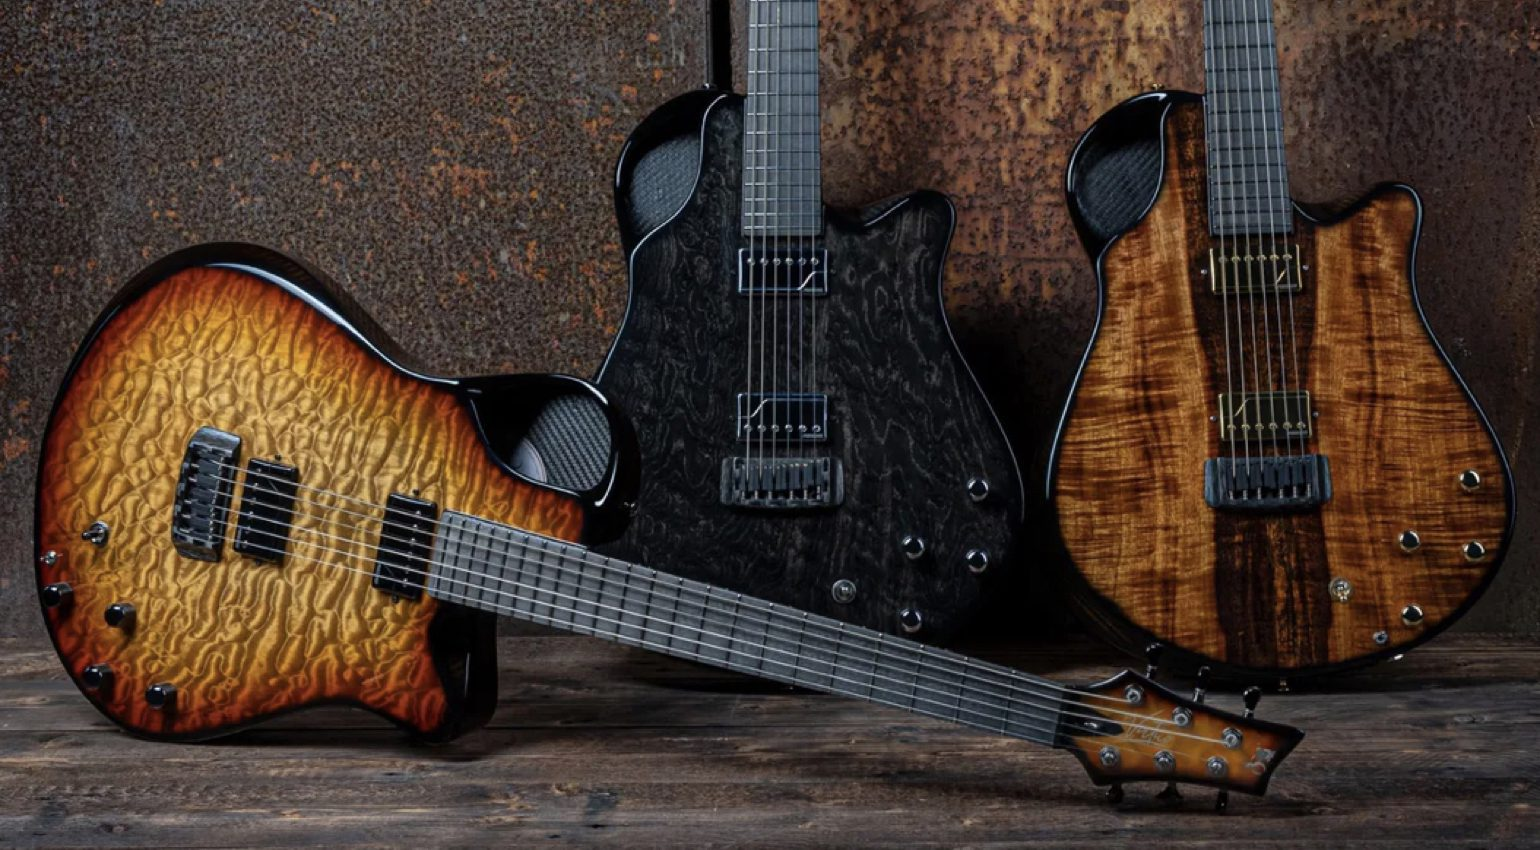 Emerald-Guitars-Virtuo-qa-hybrid-electric-and-acoustic-guitar